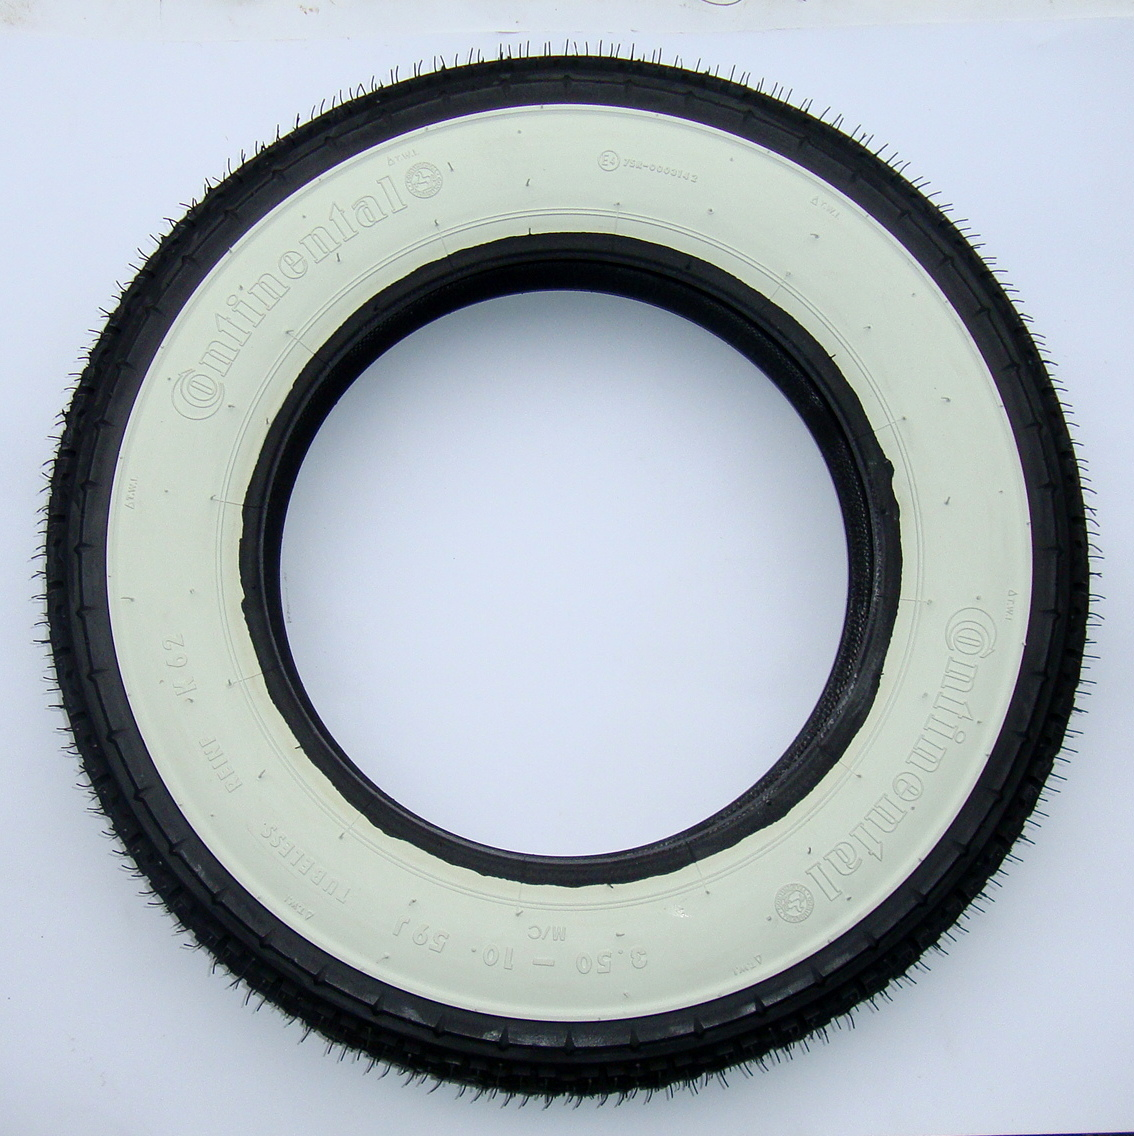 Whitewall tire, CONTINENTAL K62 WW, 3.50 x 10